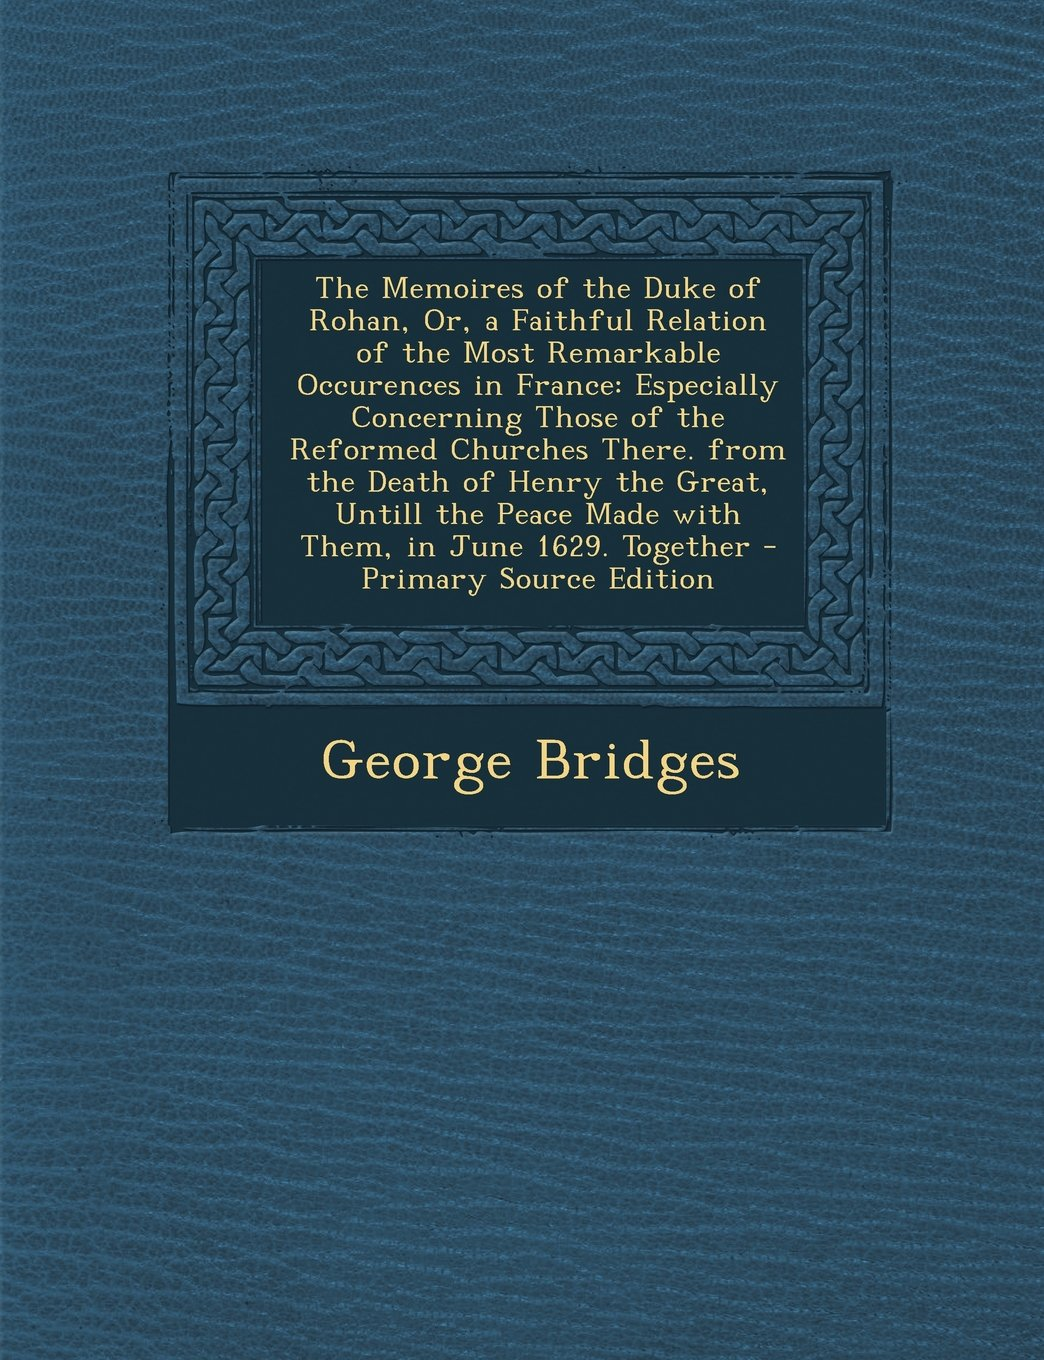 Download The Memoires of the Duke of Rohan, Or, a Faithful Relation of the Most Remarkable Occurences in France: Especially Concerning Those of the Reformed ... Peace Made with Them, in June 1629. Together pdf epub